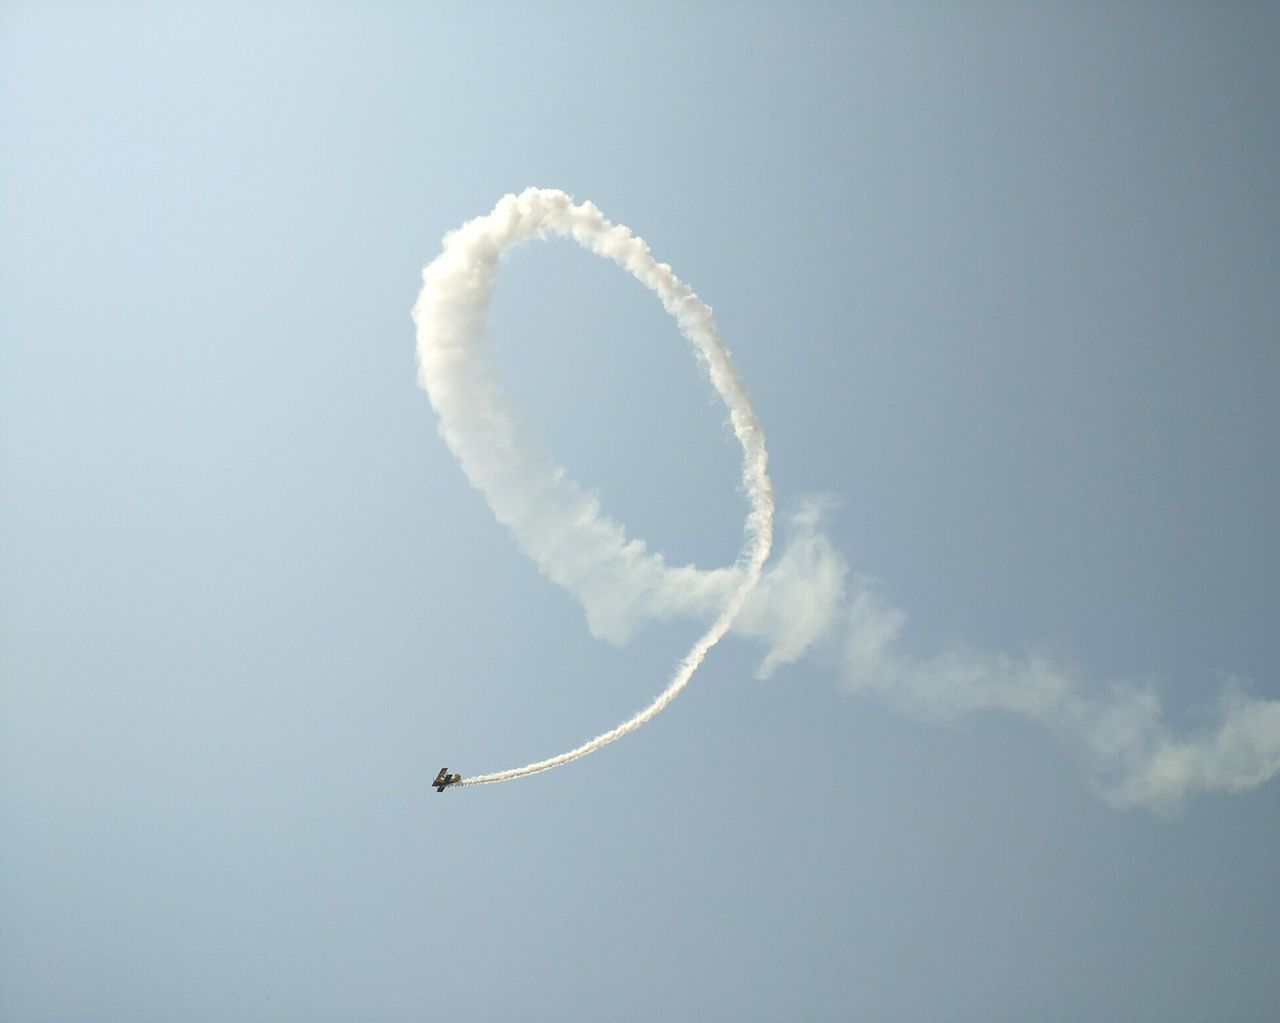 Air show at Defexpo India 2016 in Goa. Air Show Airforce Indian Air Force Indian Air Show Defexpo Defexpogoa2016 Defence Exposition Defence Expo Entertainment Smoke Loop Loop Stunt Airplane Aeroplane Sky Circle Indian Army Goa Goa India Display Public White Smoke